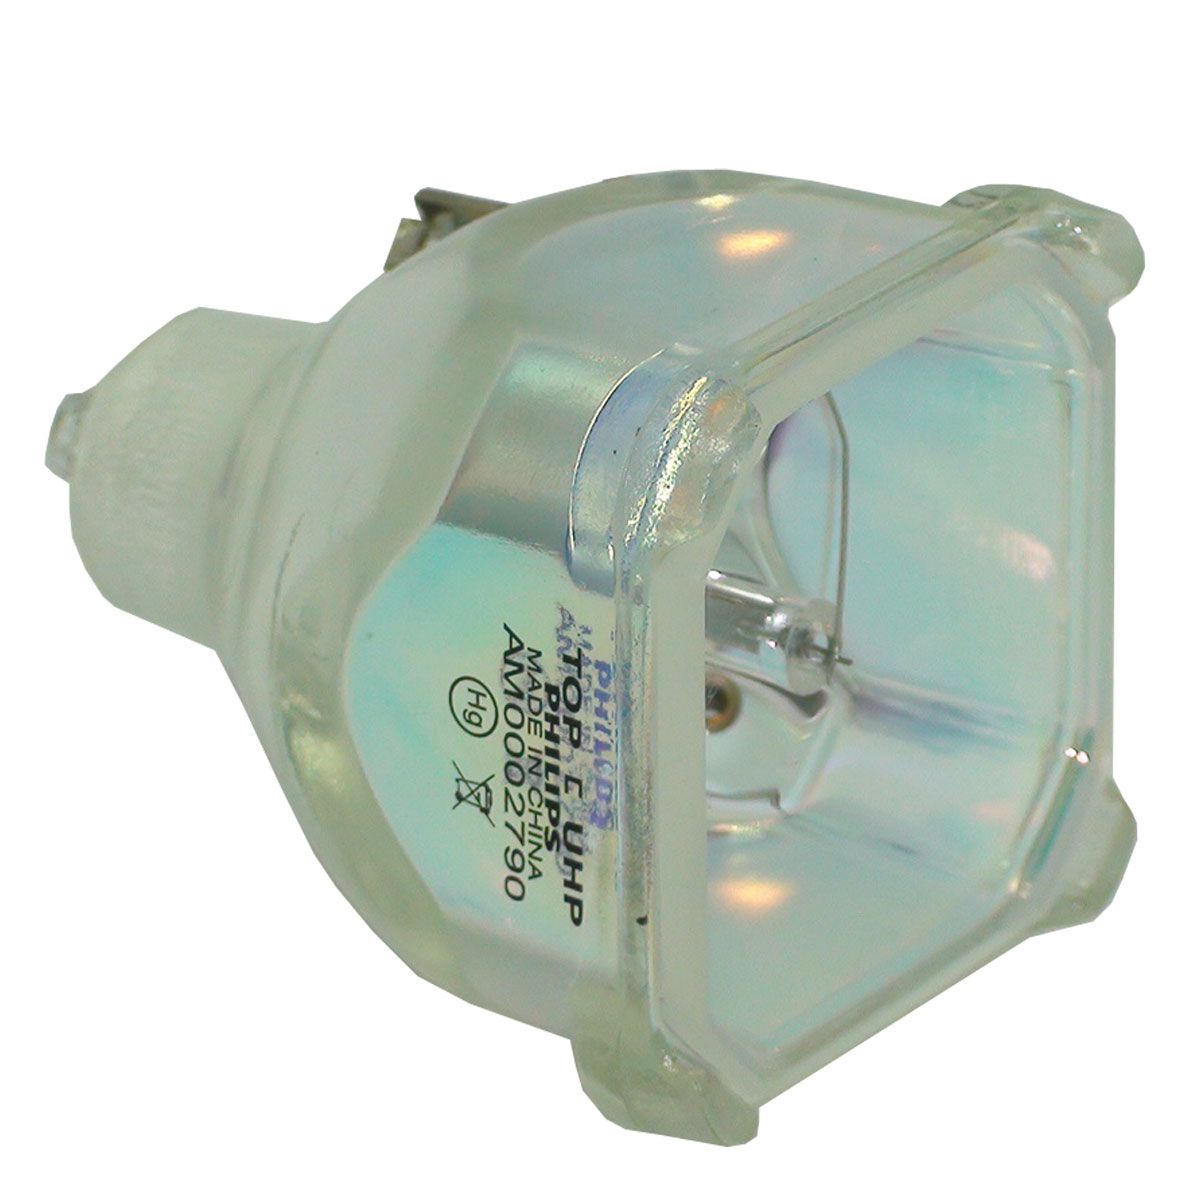 Lutema Platinum Bulb for Hitachi CP-S225WAT Projector Lamp (Original Philips Inside) - image 4 of 5